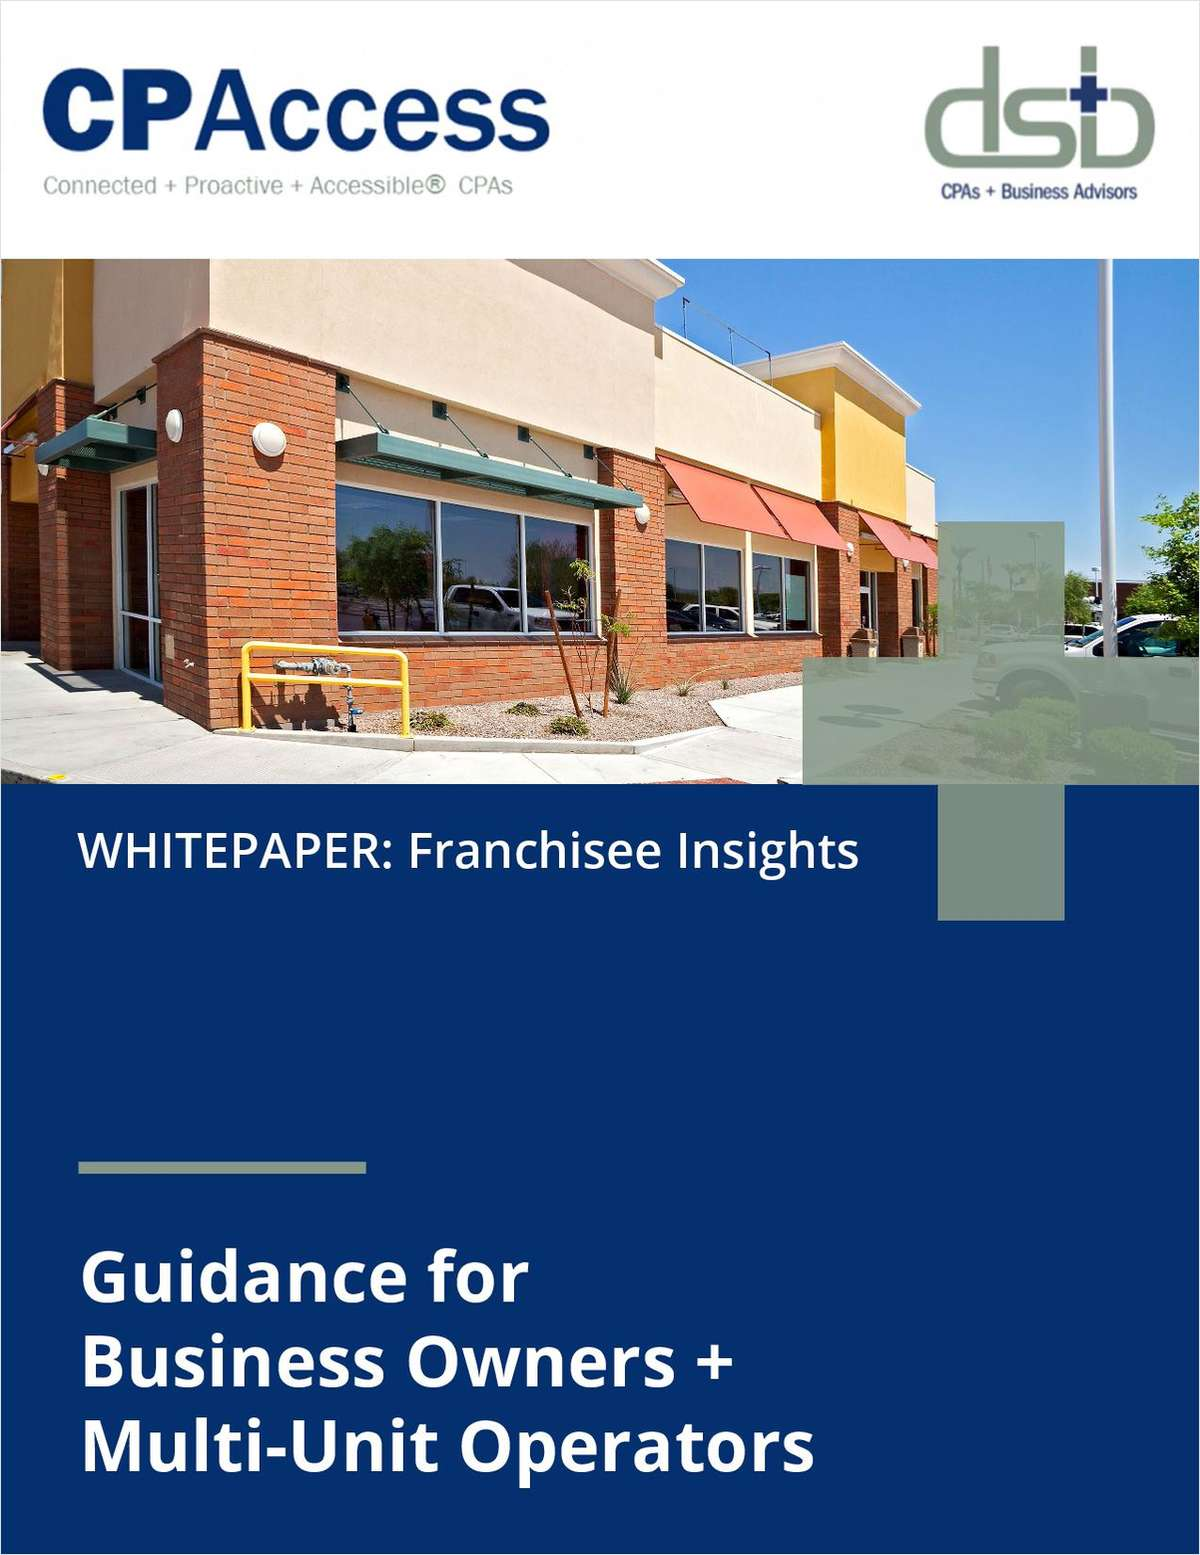 Franchise Growth: These Financial Insights from CPAs Offer Valuable Guidance to Multi-Unit Operators